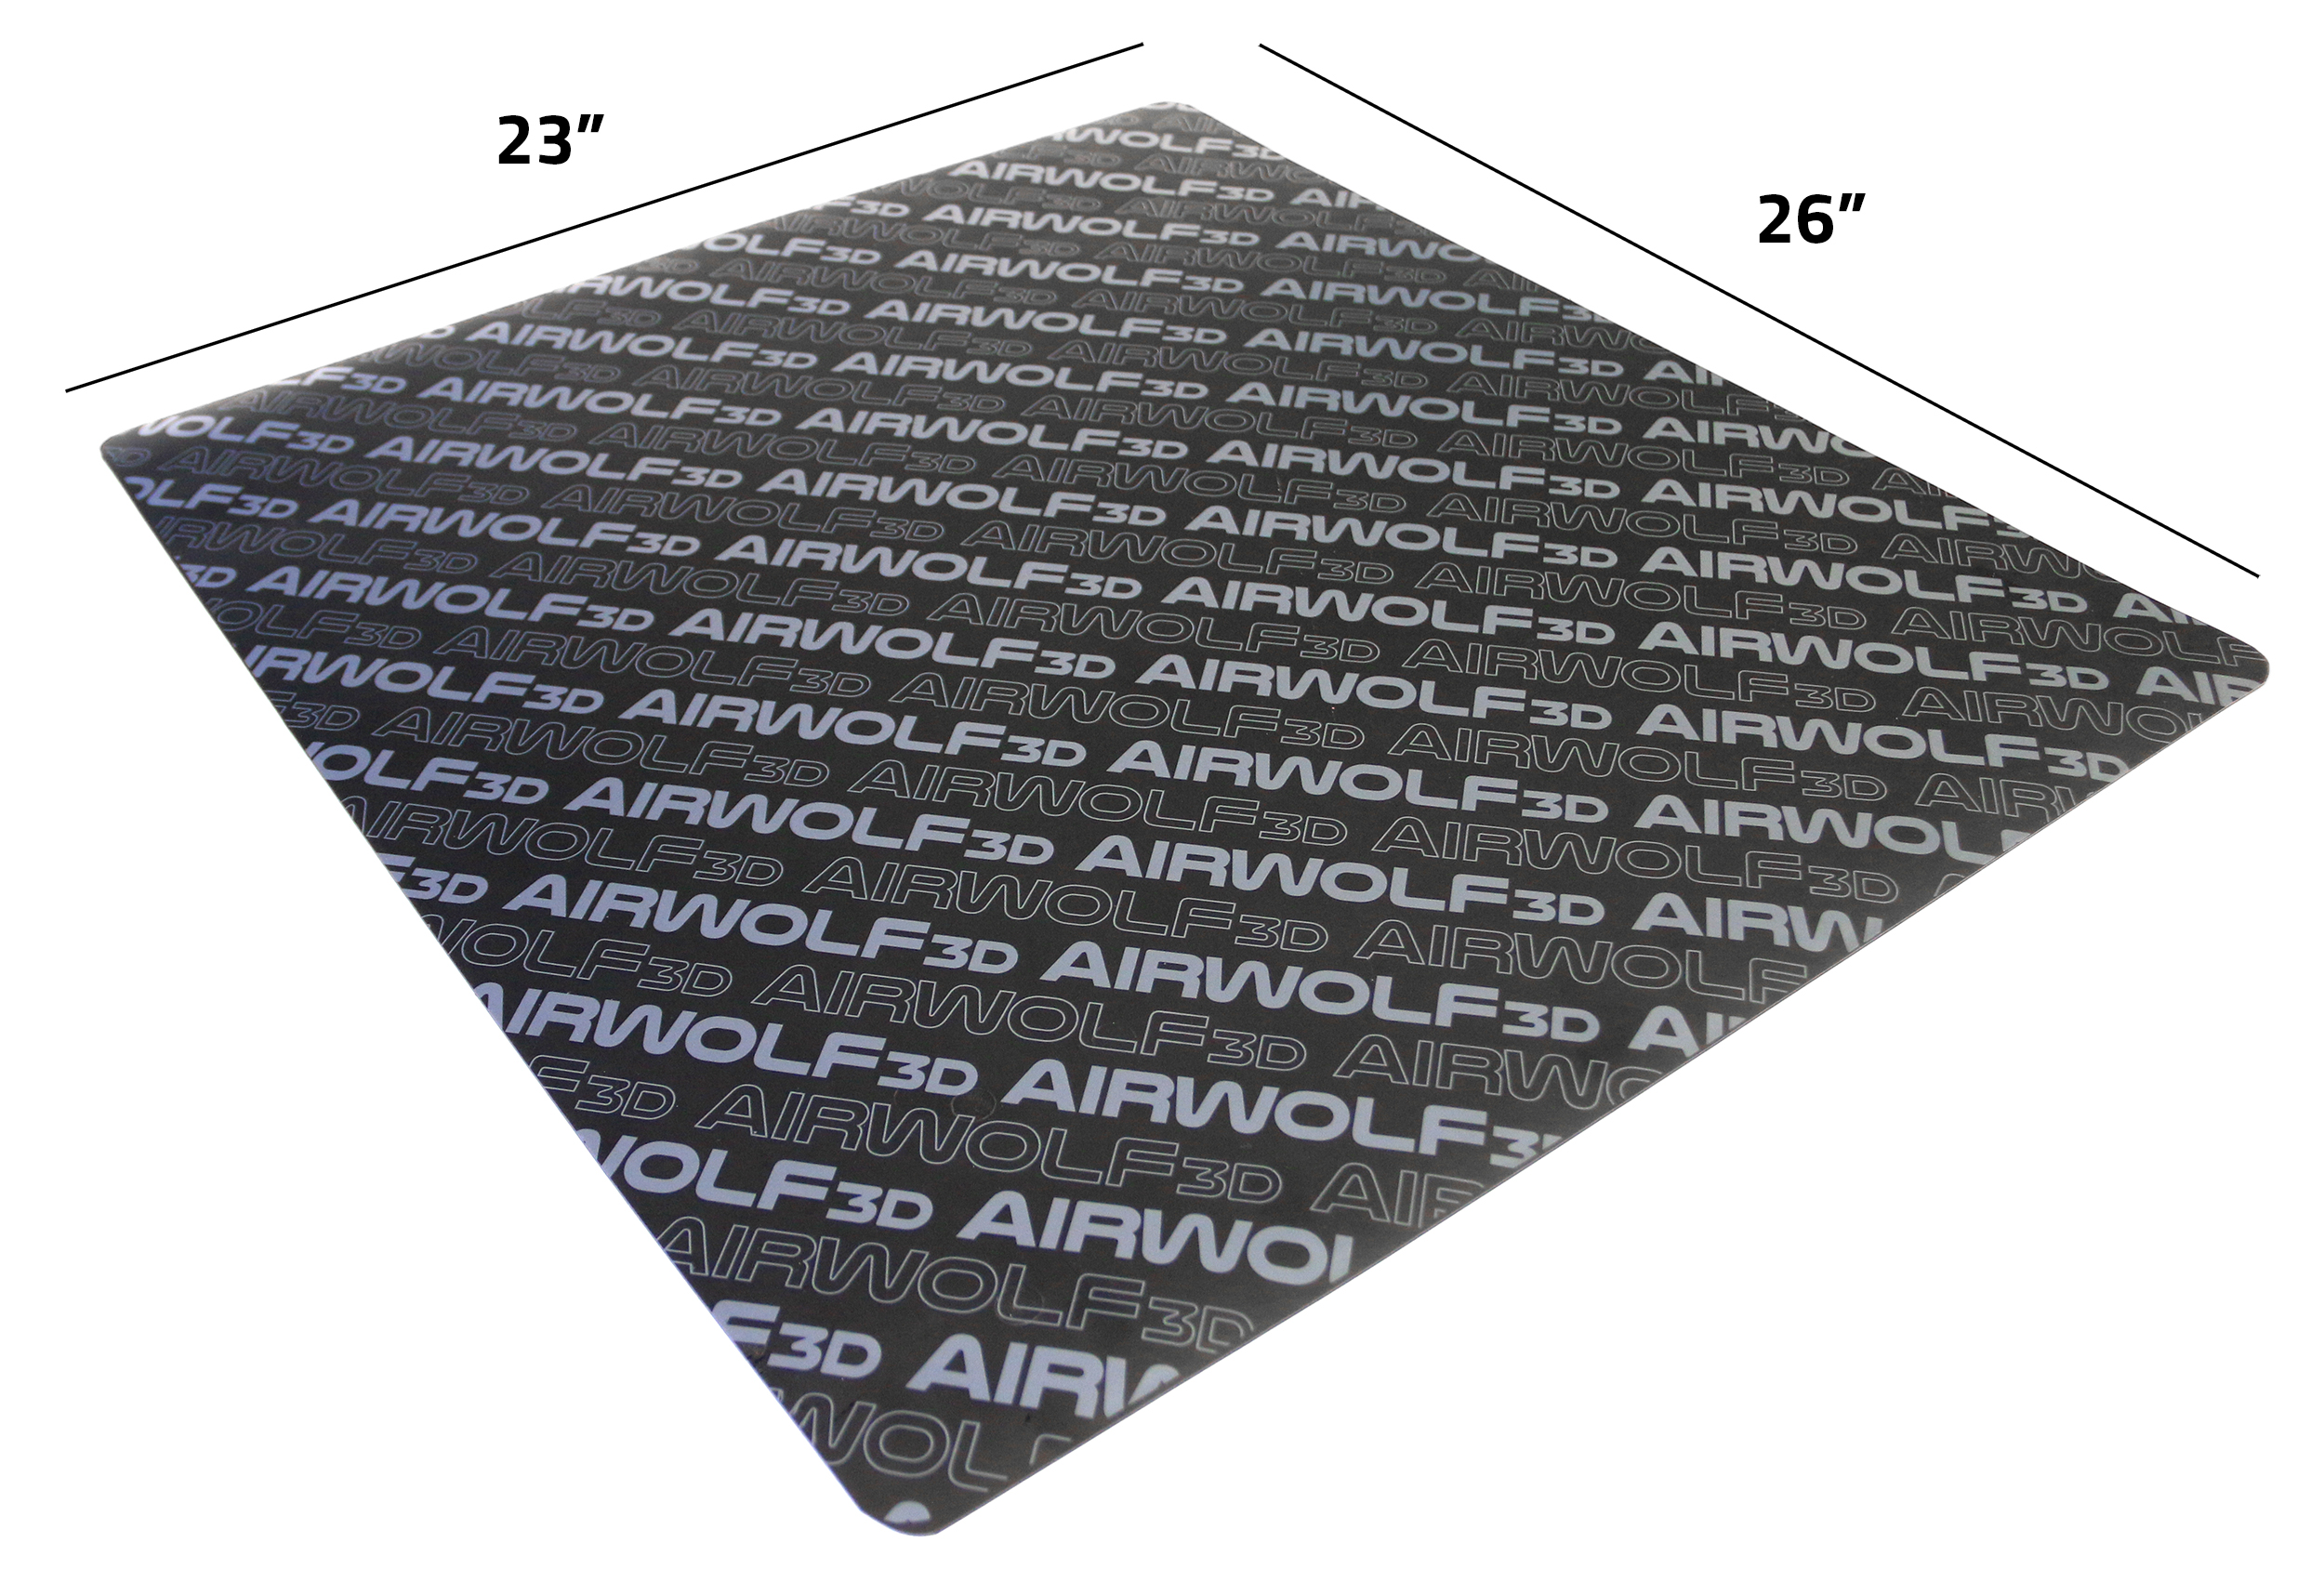 Esd Isolation Mat For 3d Printers Airwolf 3d